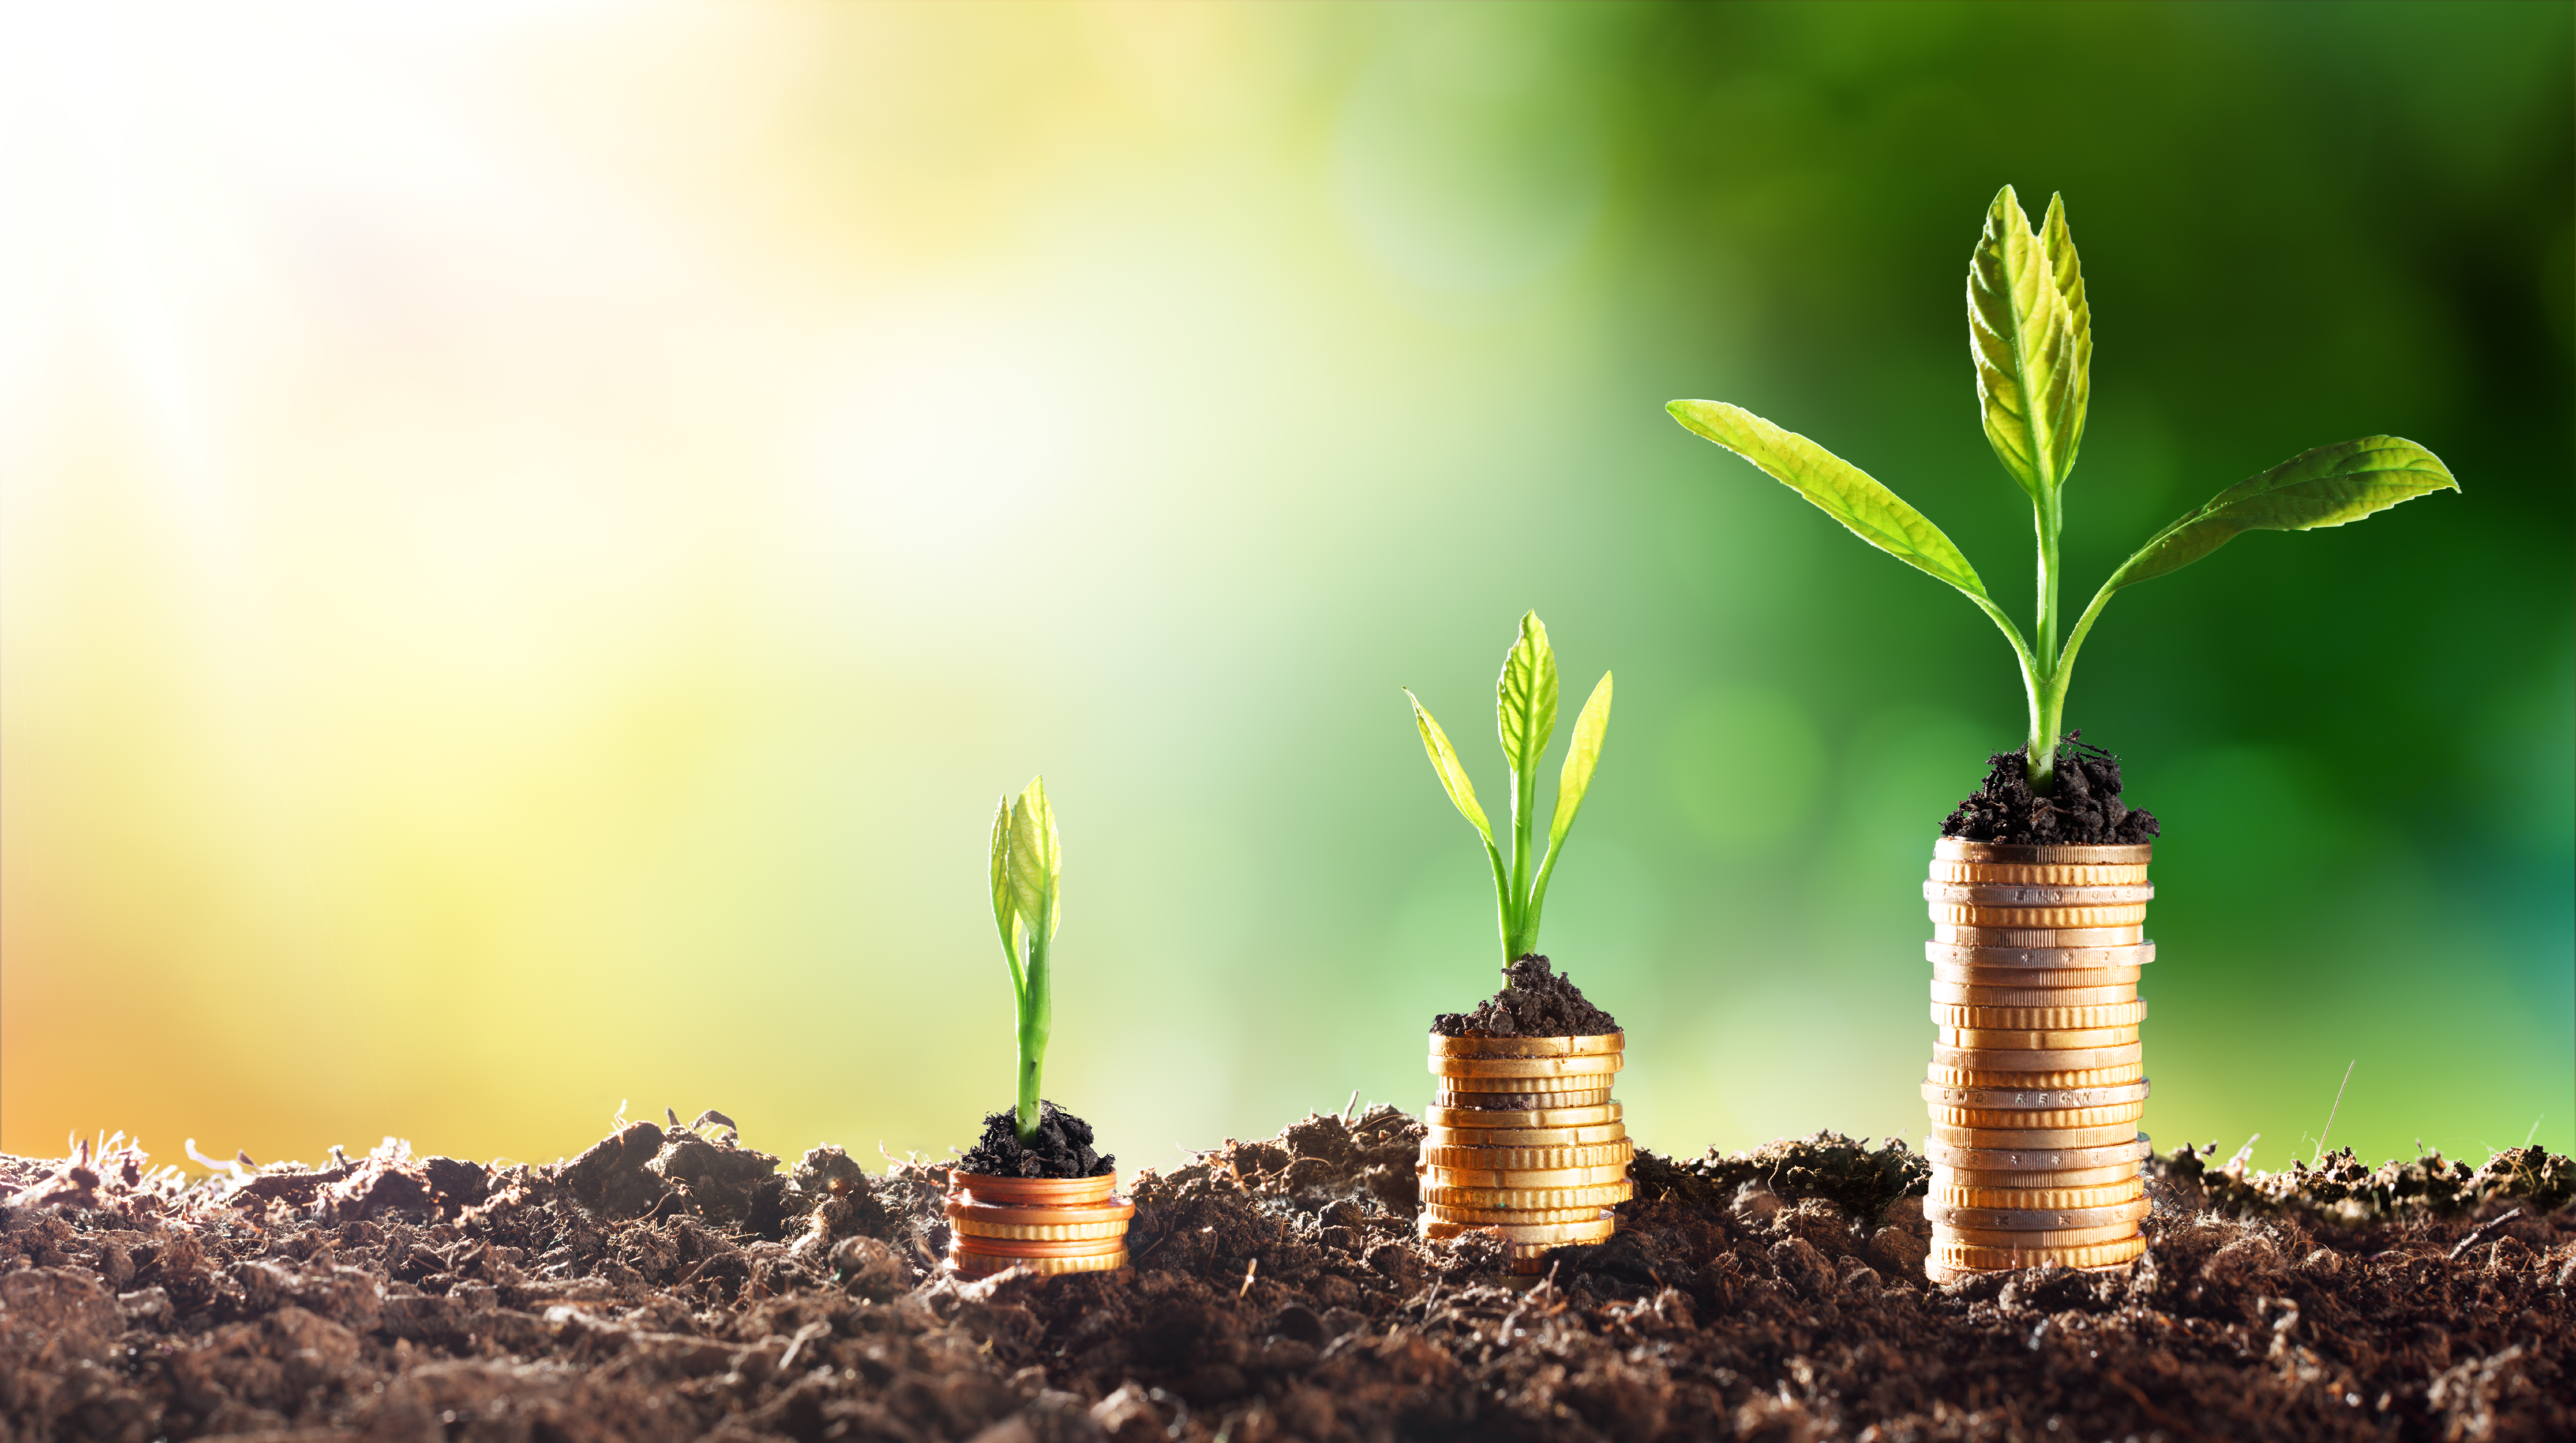 Transition finance: banking brown towards a greener future